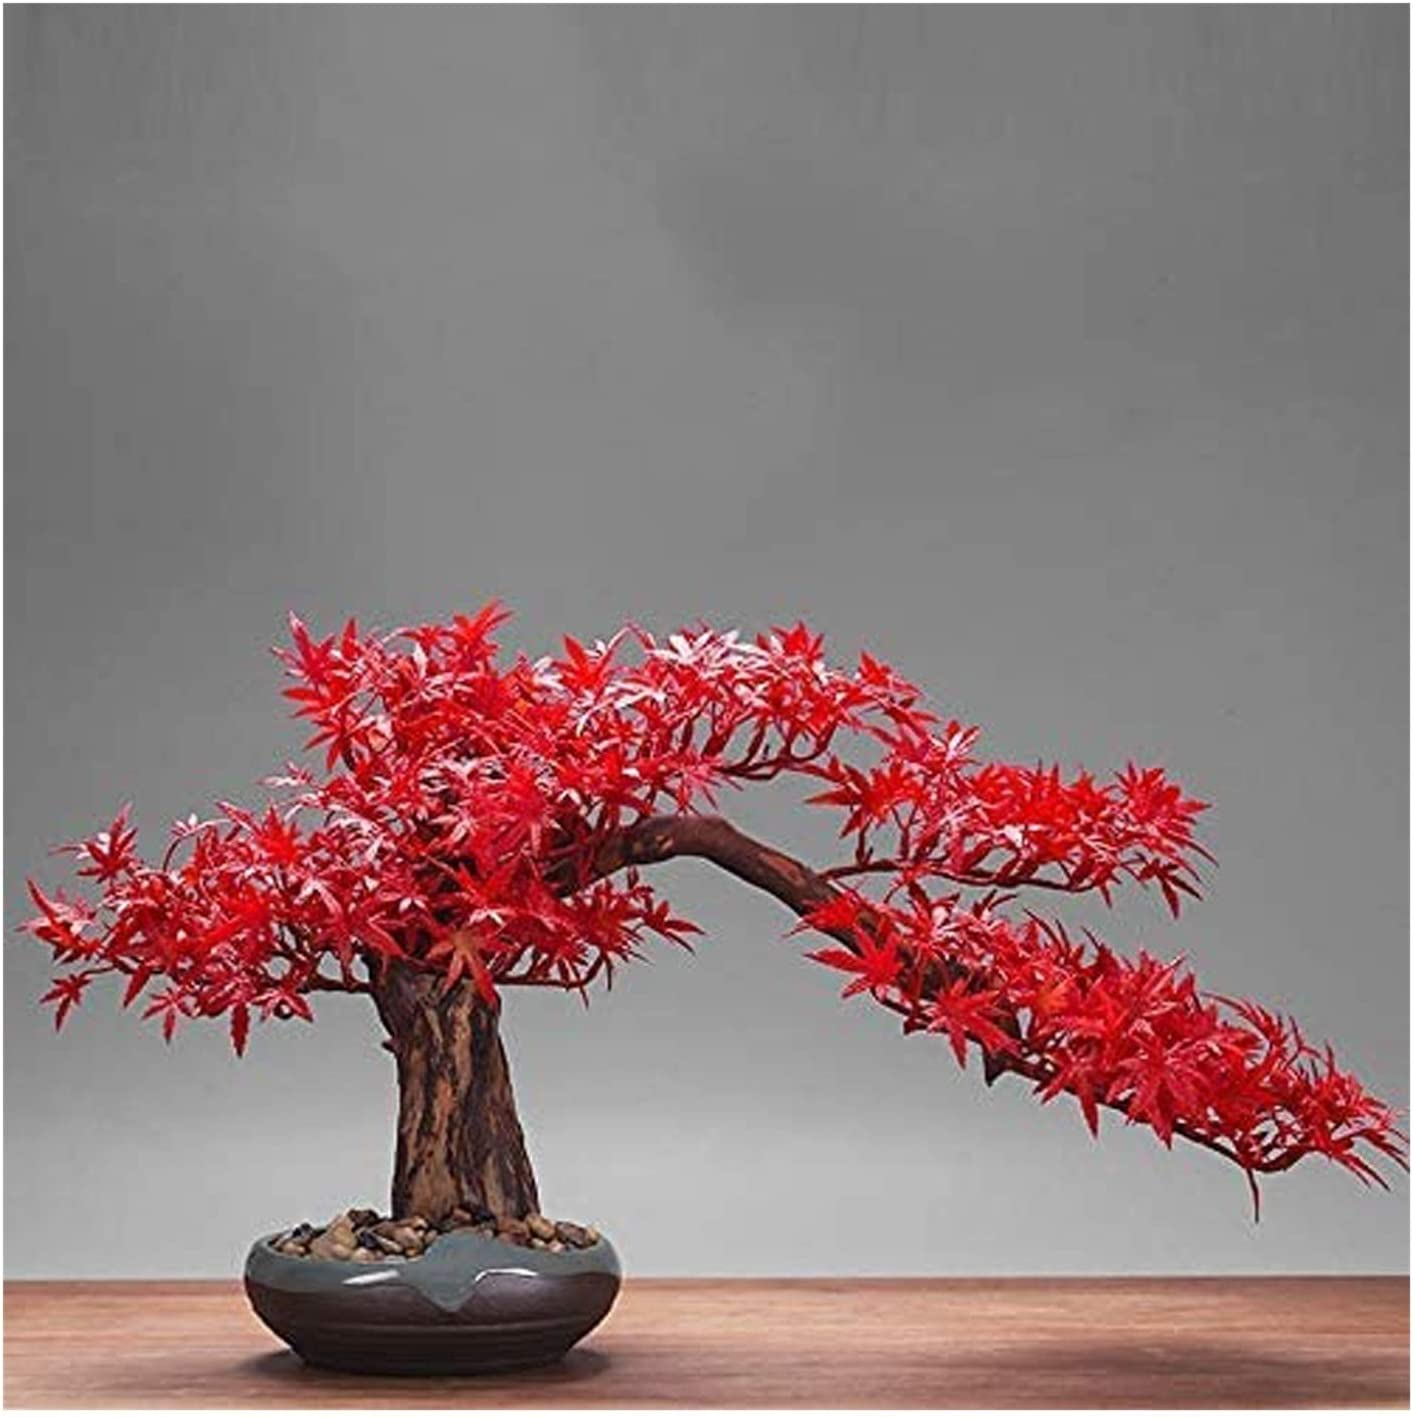 Sale special price DHCZZRS774 Artificial Bonsai Max 67% OFF Tree Re Fake